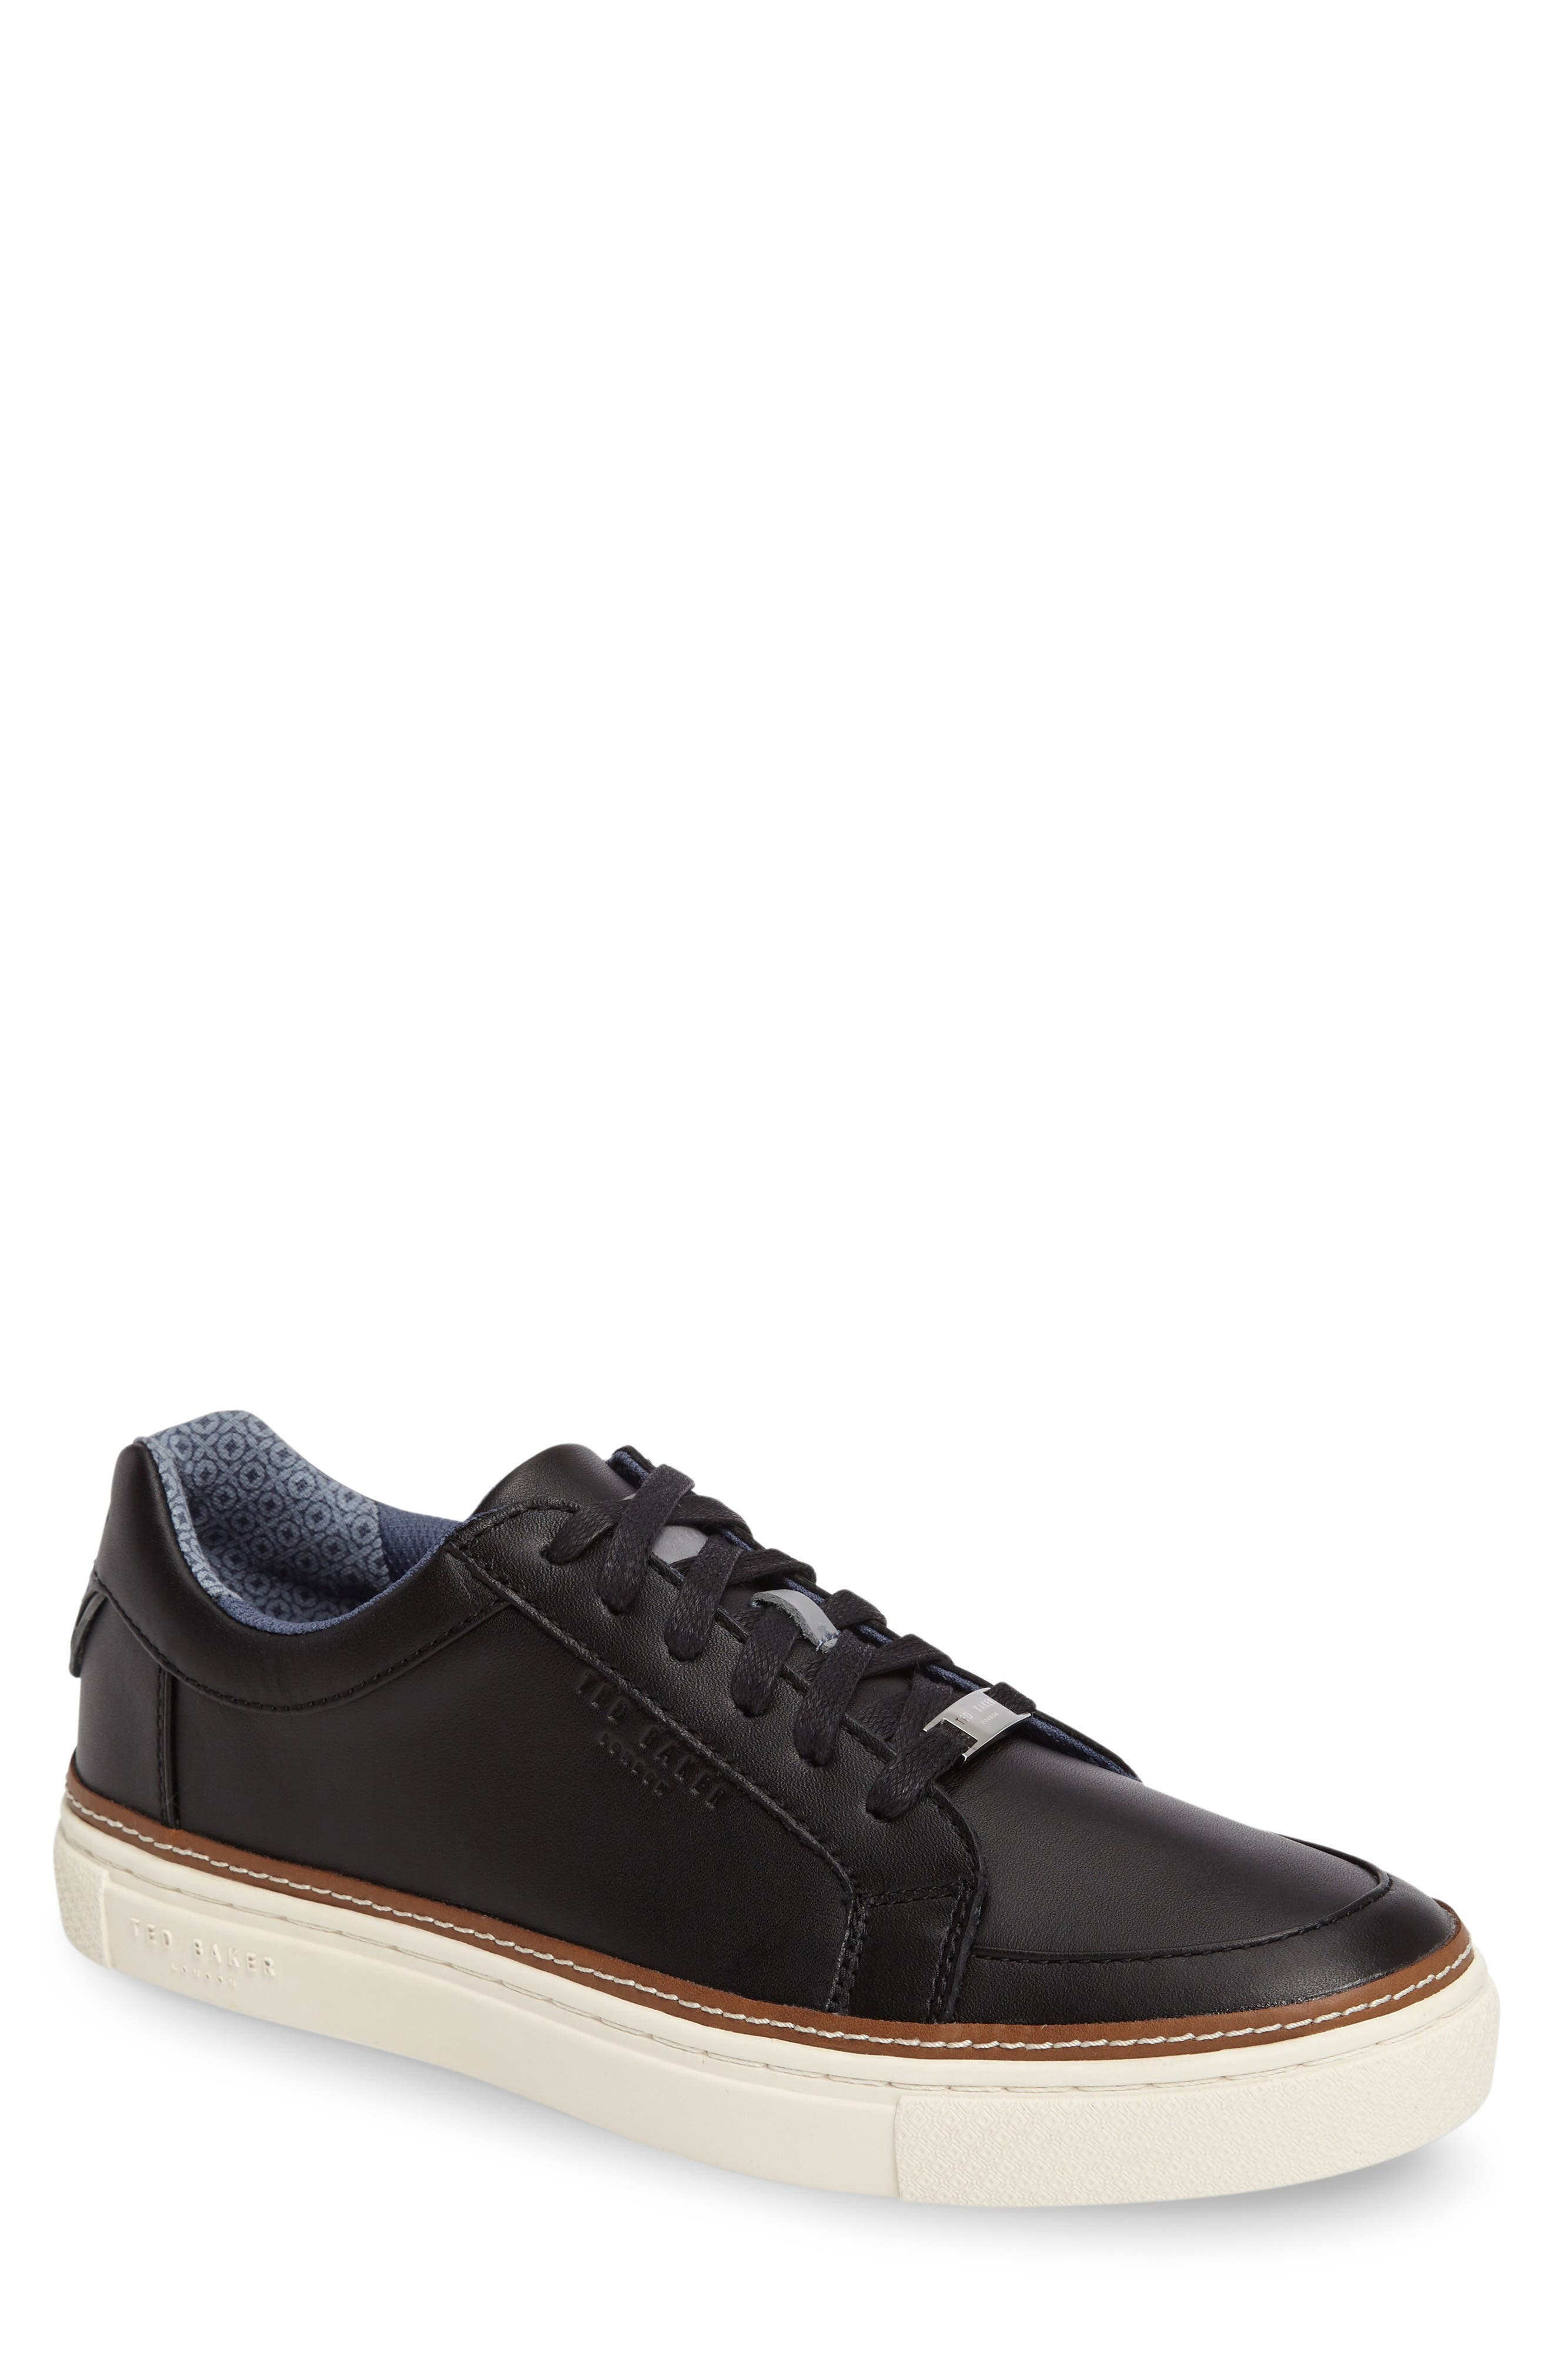 Rouu Sneaker,                         Main,                         color, Black Leather